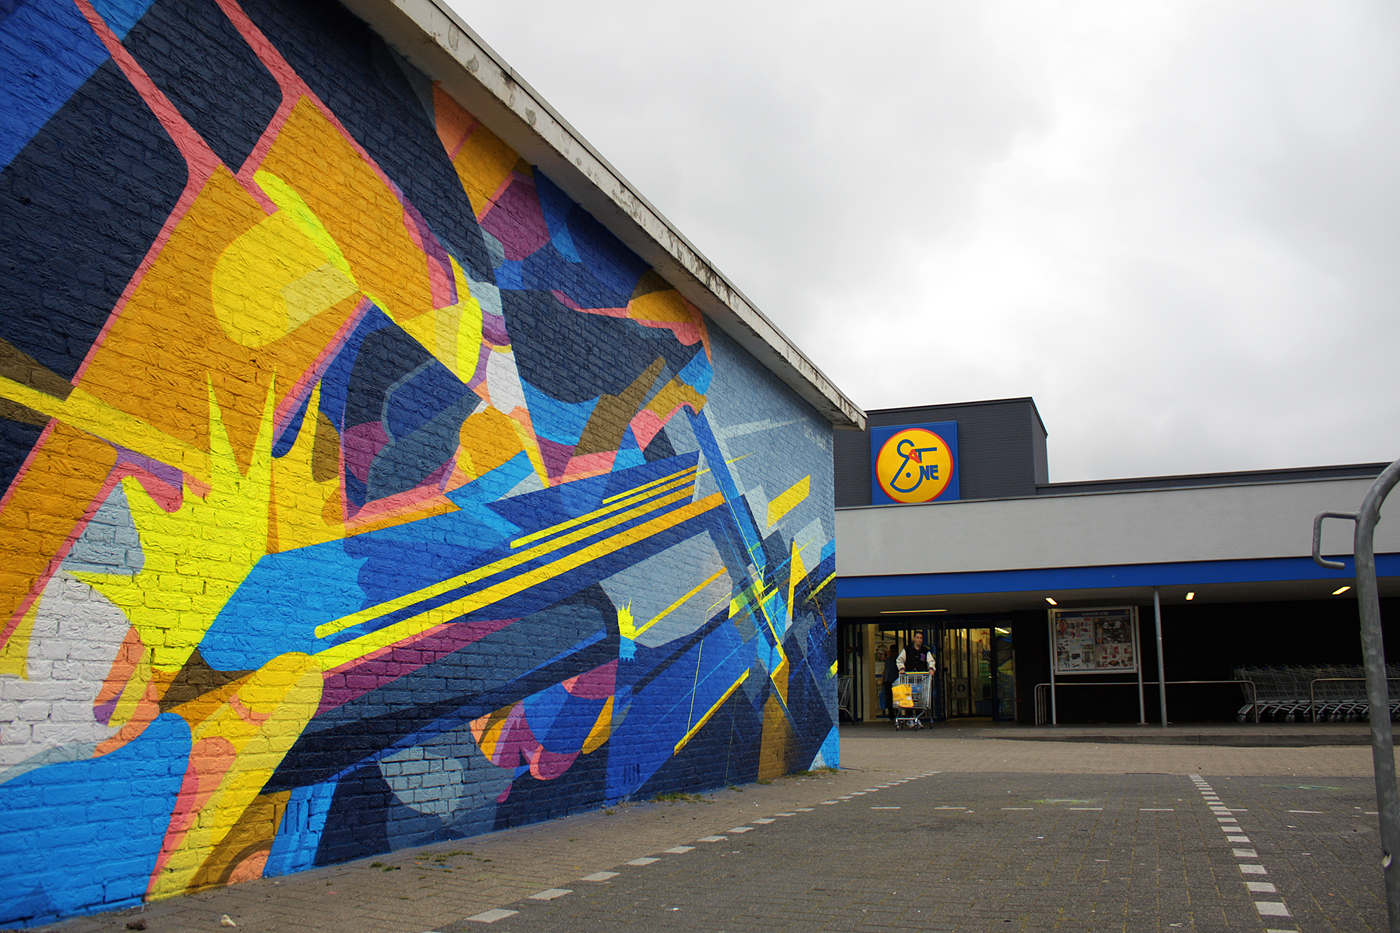 satone-nawer-new-mural-in-eindhoven-06